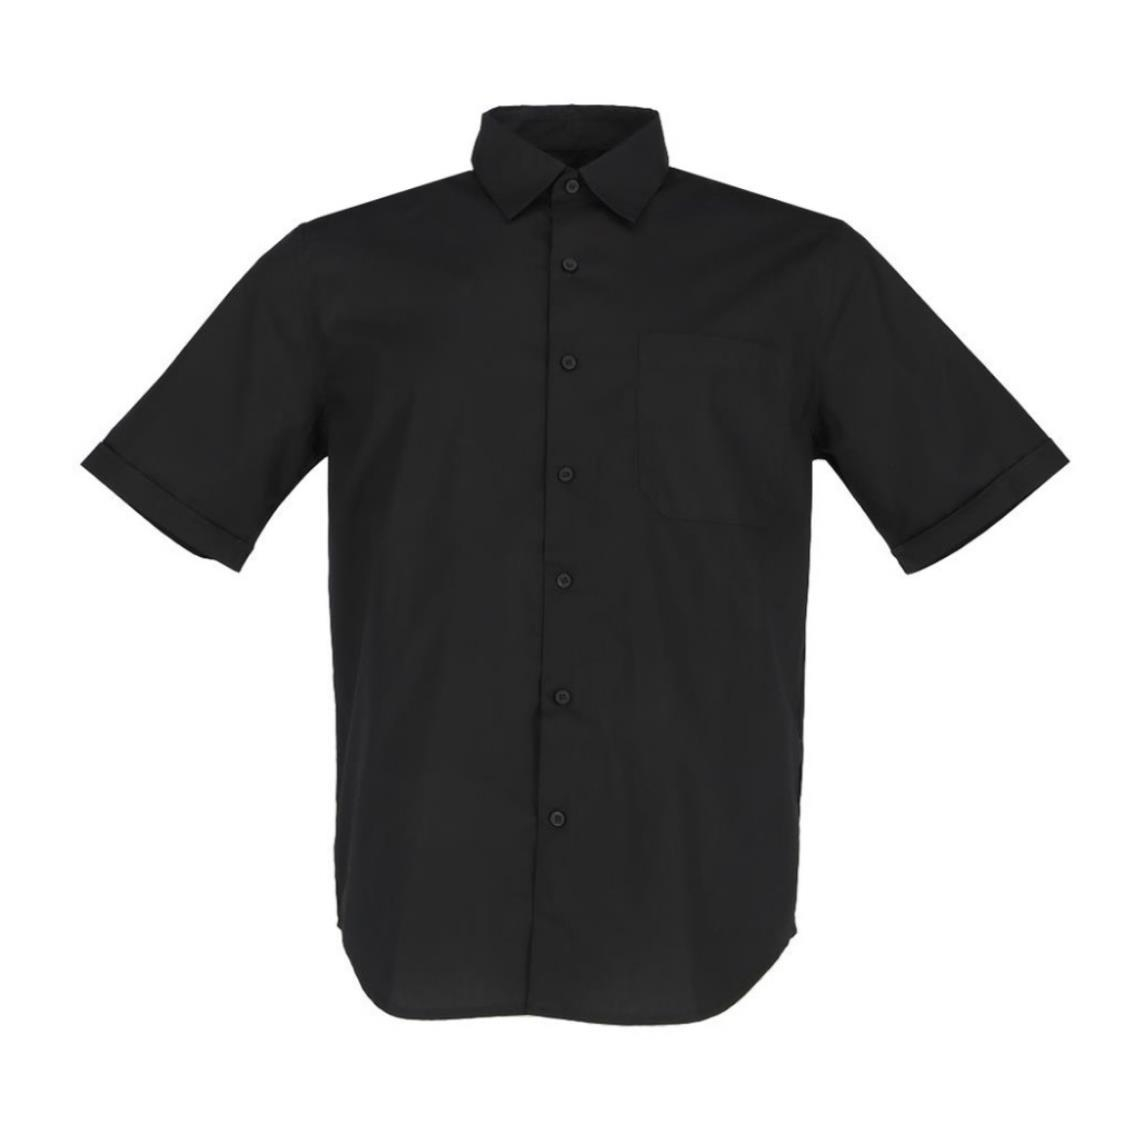 Mens Short Sleeve Shirt In Solid Black